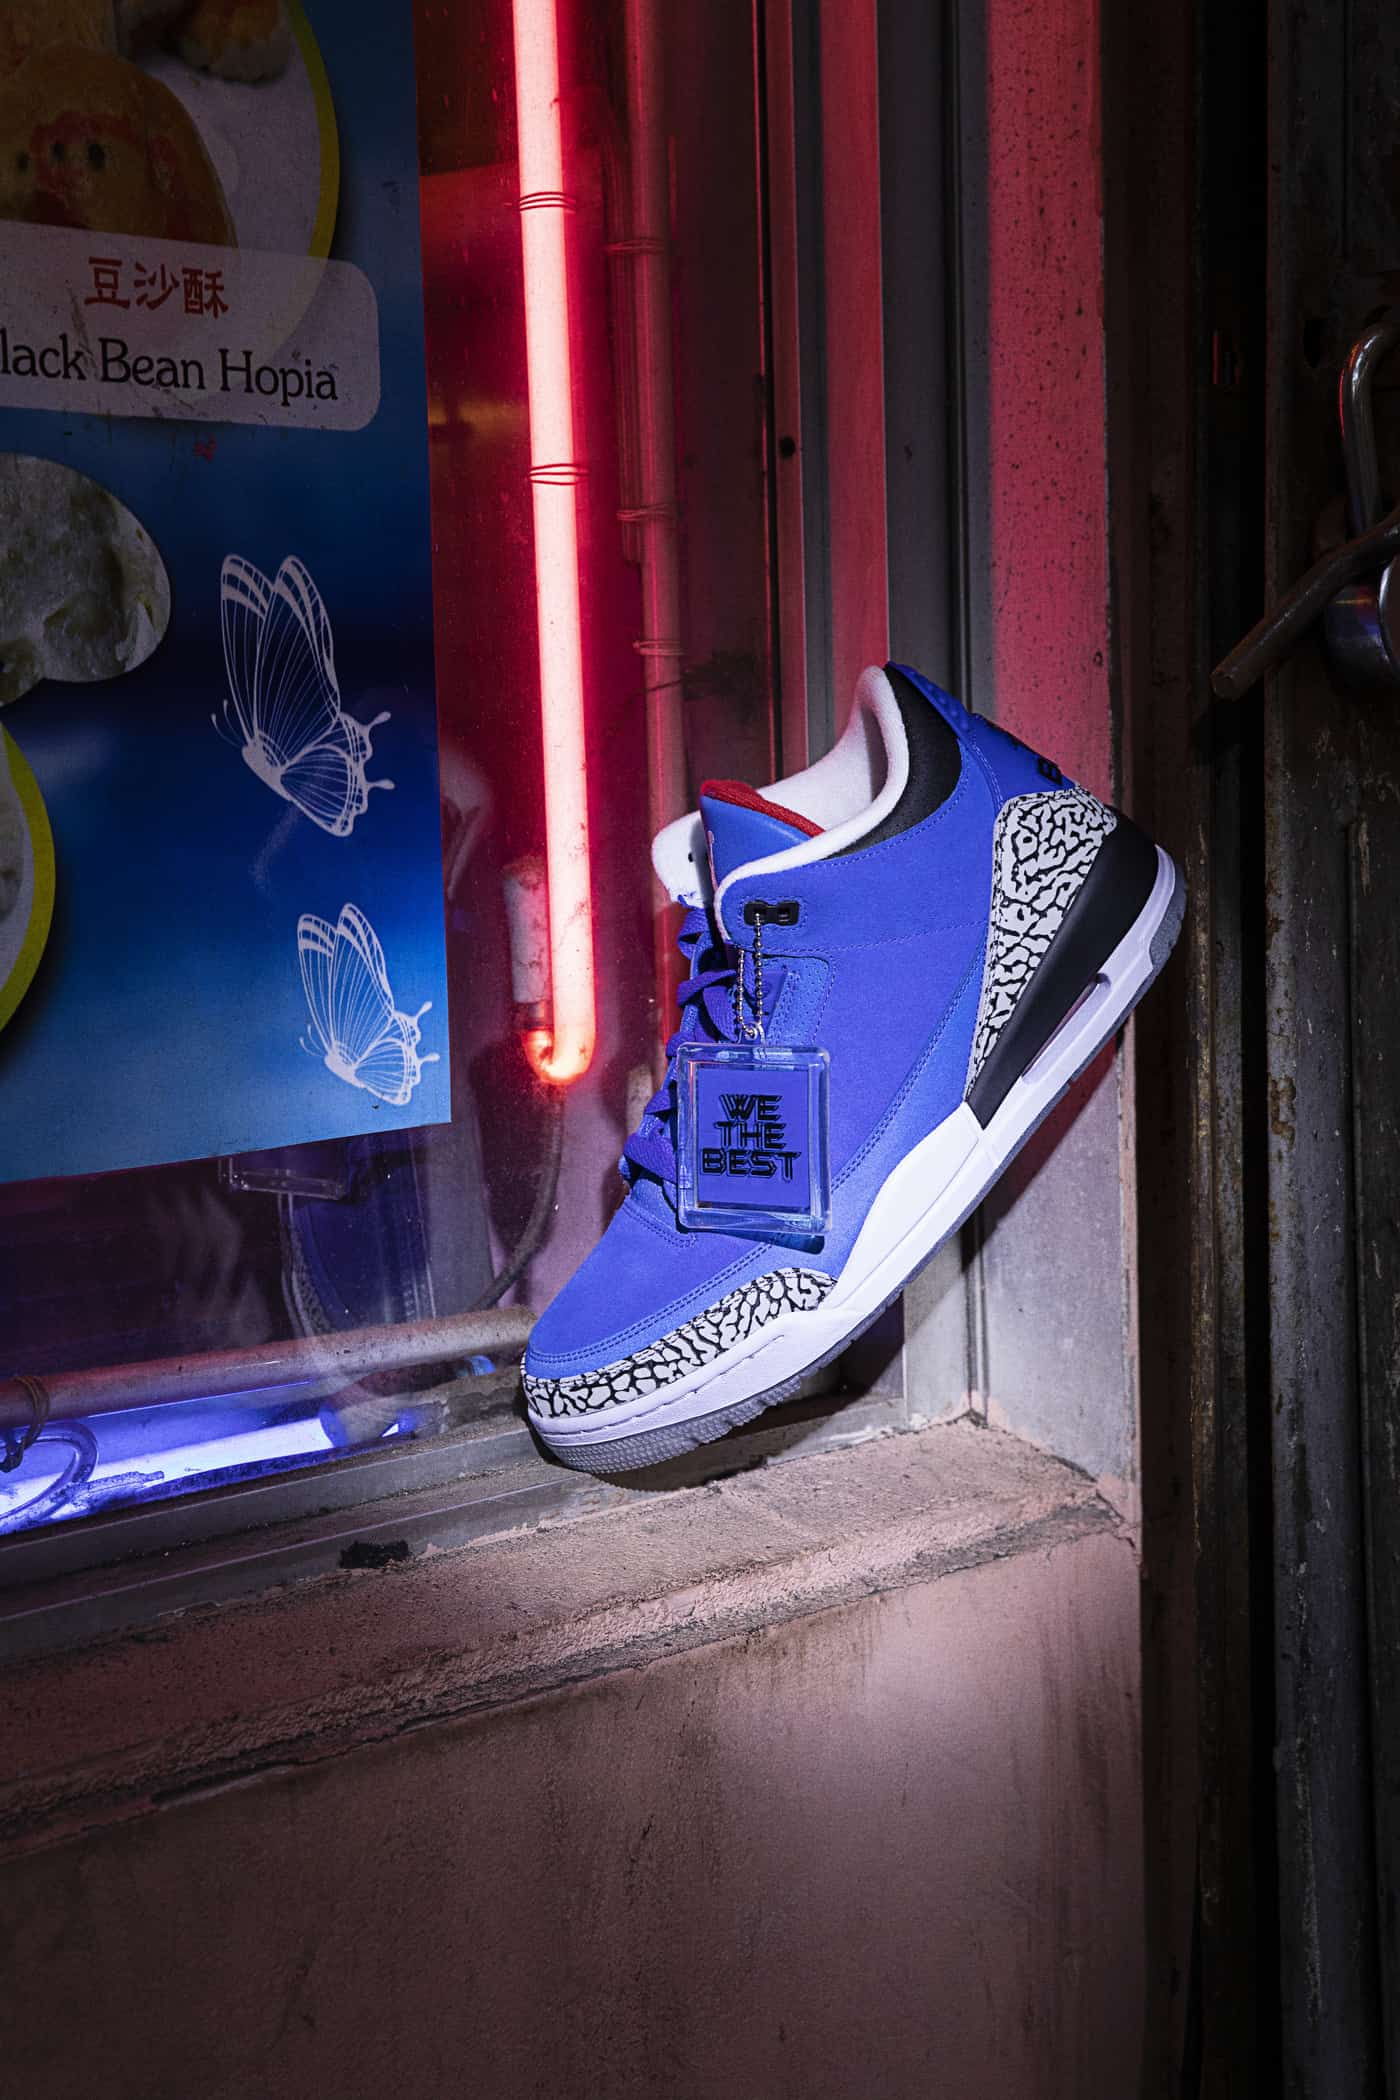 reputable site 78556 cb9c4 American Eagle Now Selling $50,000 Sneakers - Daily Front Row